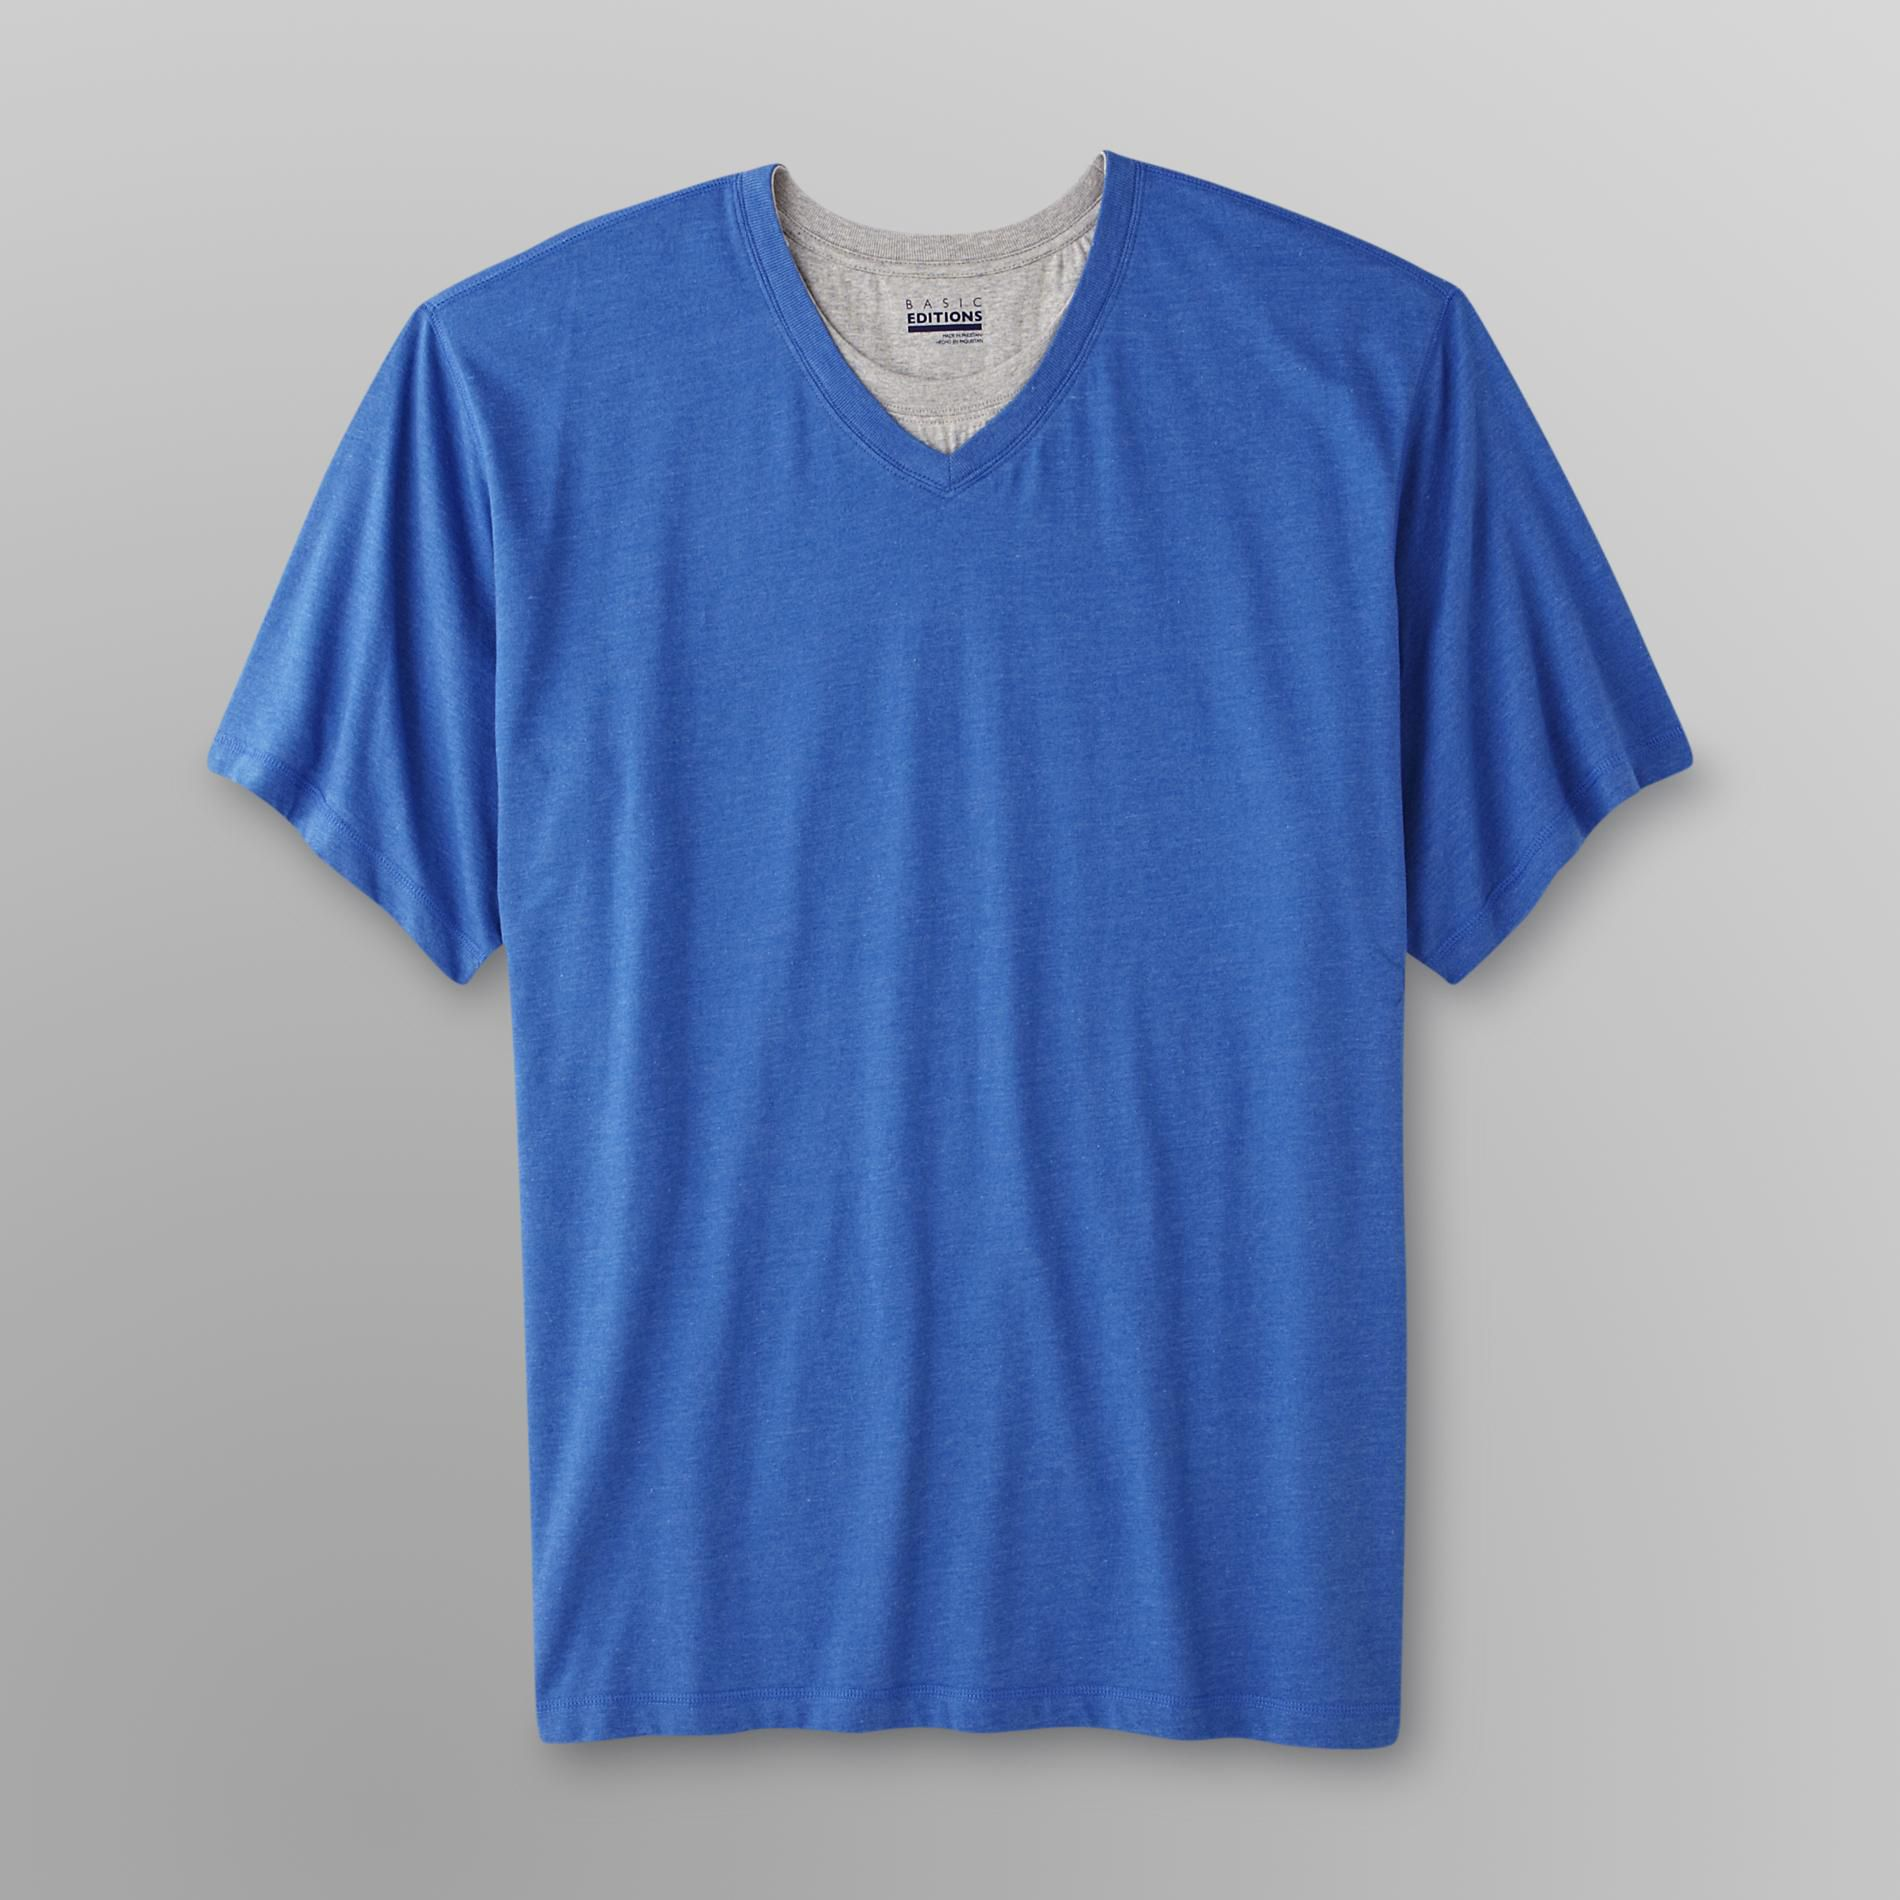 Basic Editions Men's Layered V-Neck T-Shirt at Kmart.com